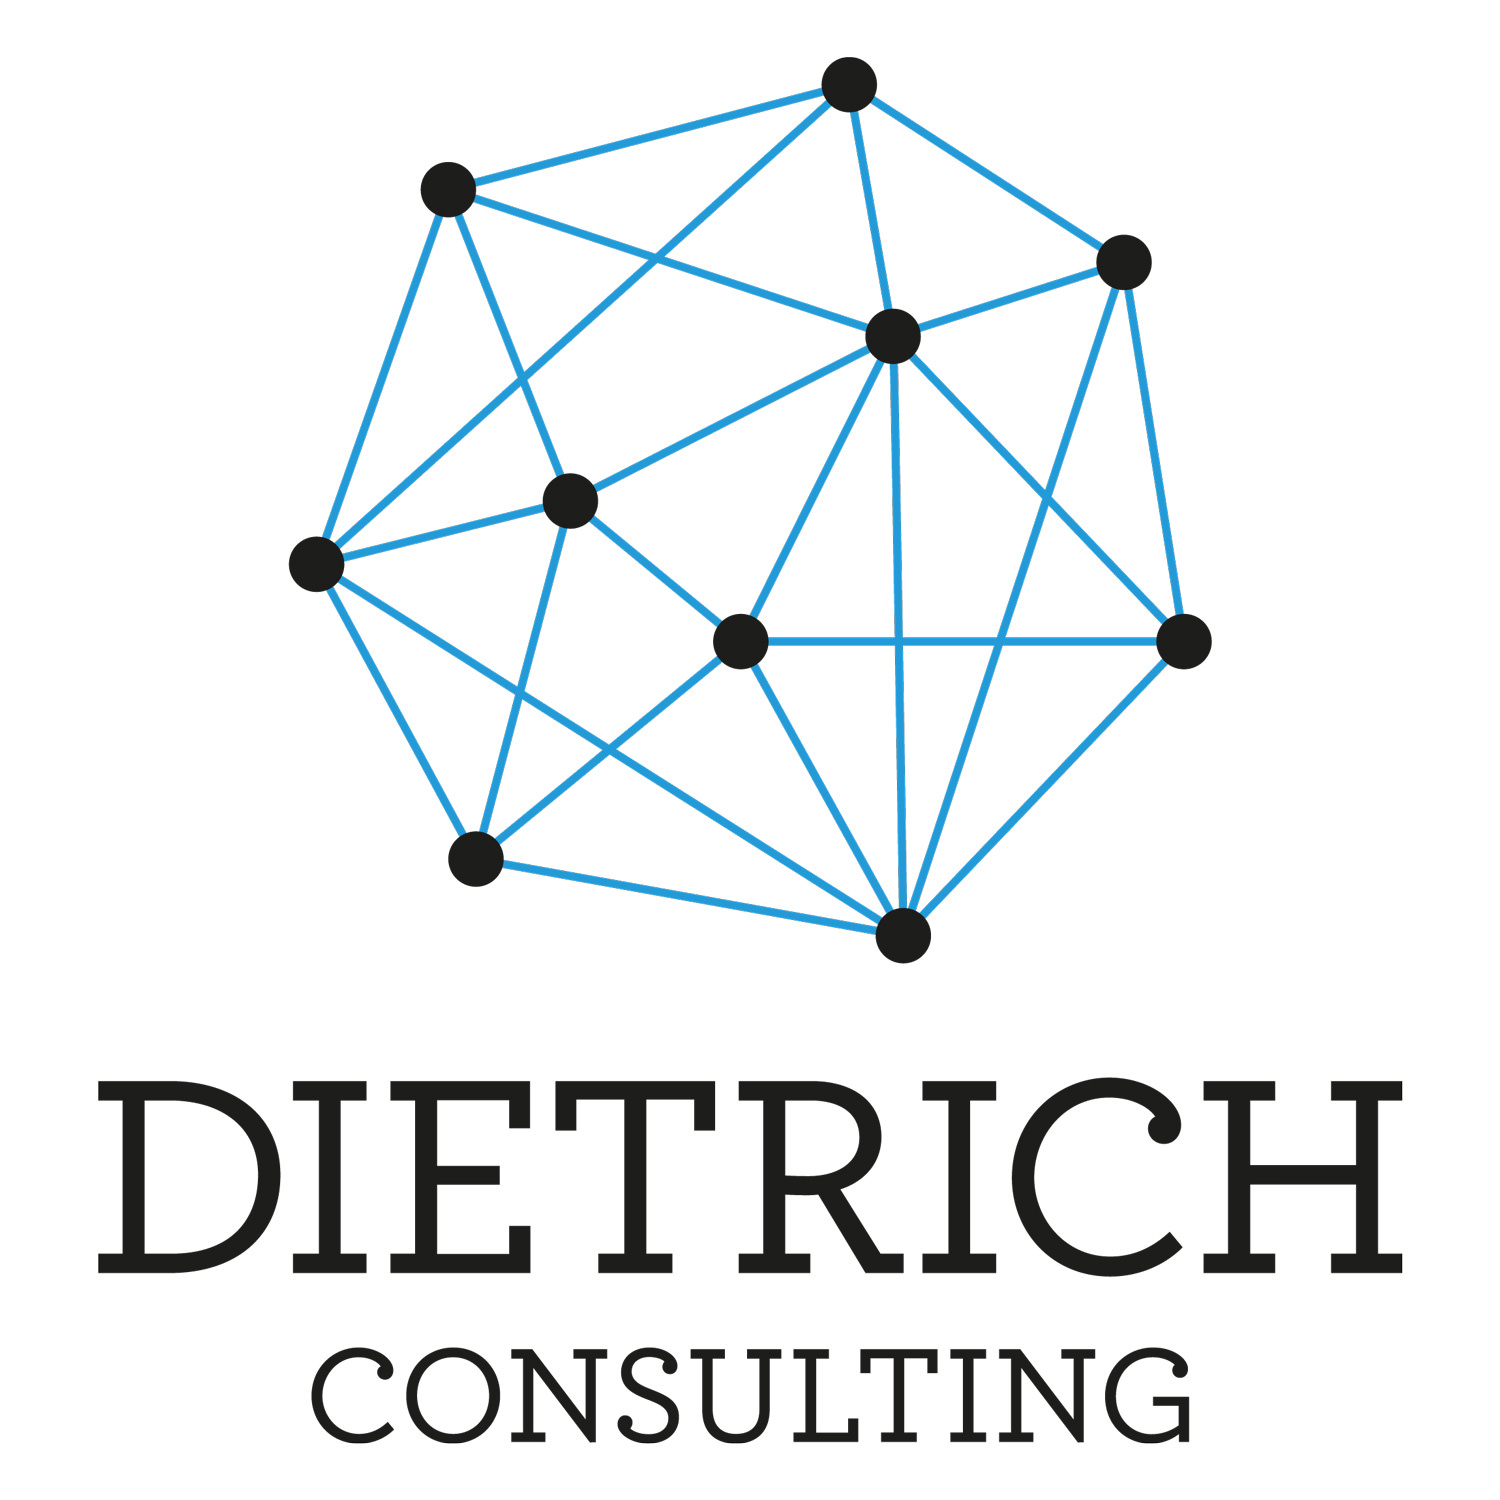 Dietrich Consulting